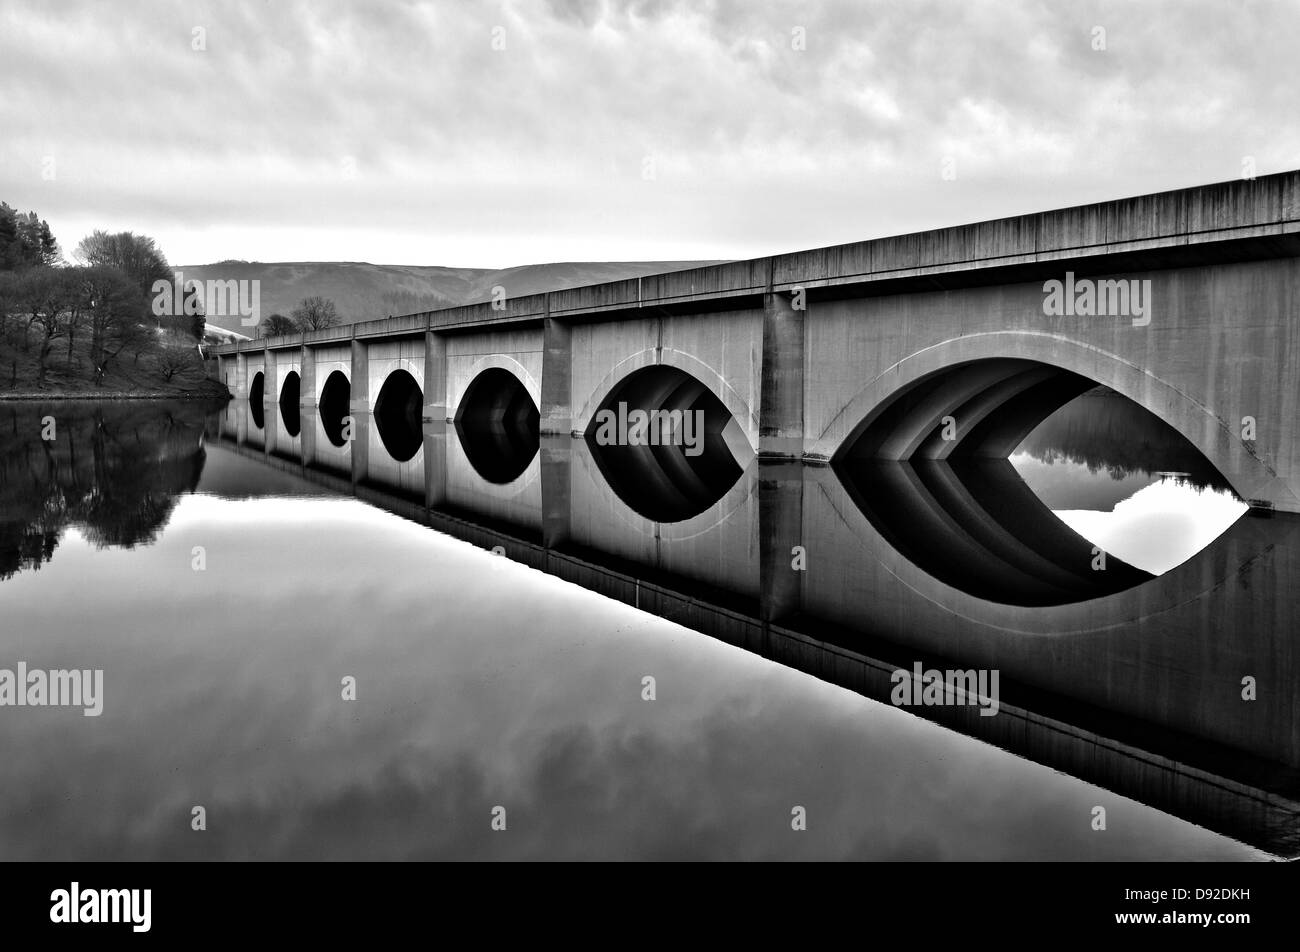 Bridge at Ladybower Reservoir - Stock Image